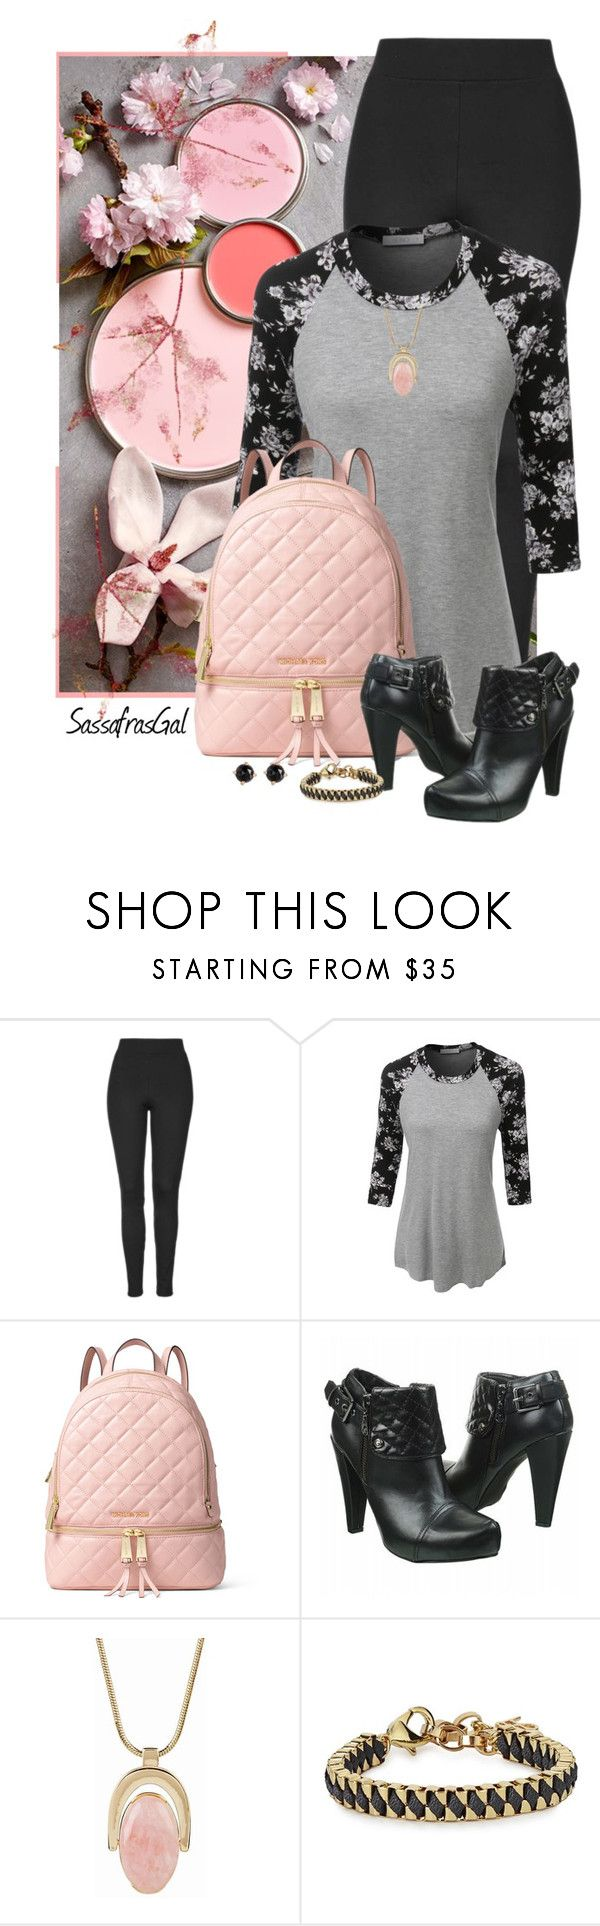 """Touch of Pink"" by sassafrasgal ❤ liked on Polyvore featuring Topshop, LE3NO, MICHAEL Michael Kors, Talbots, John & Pearl and Irene Neuwirth"